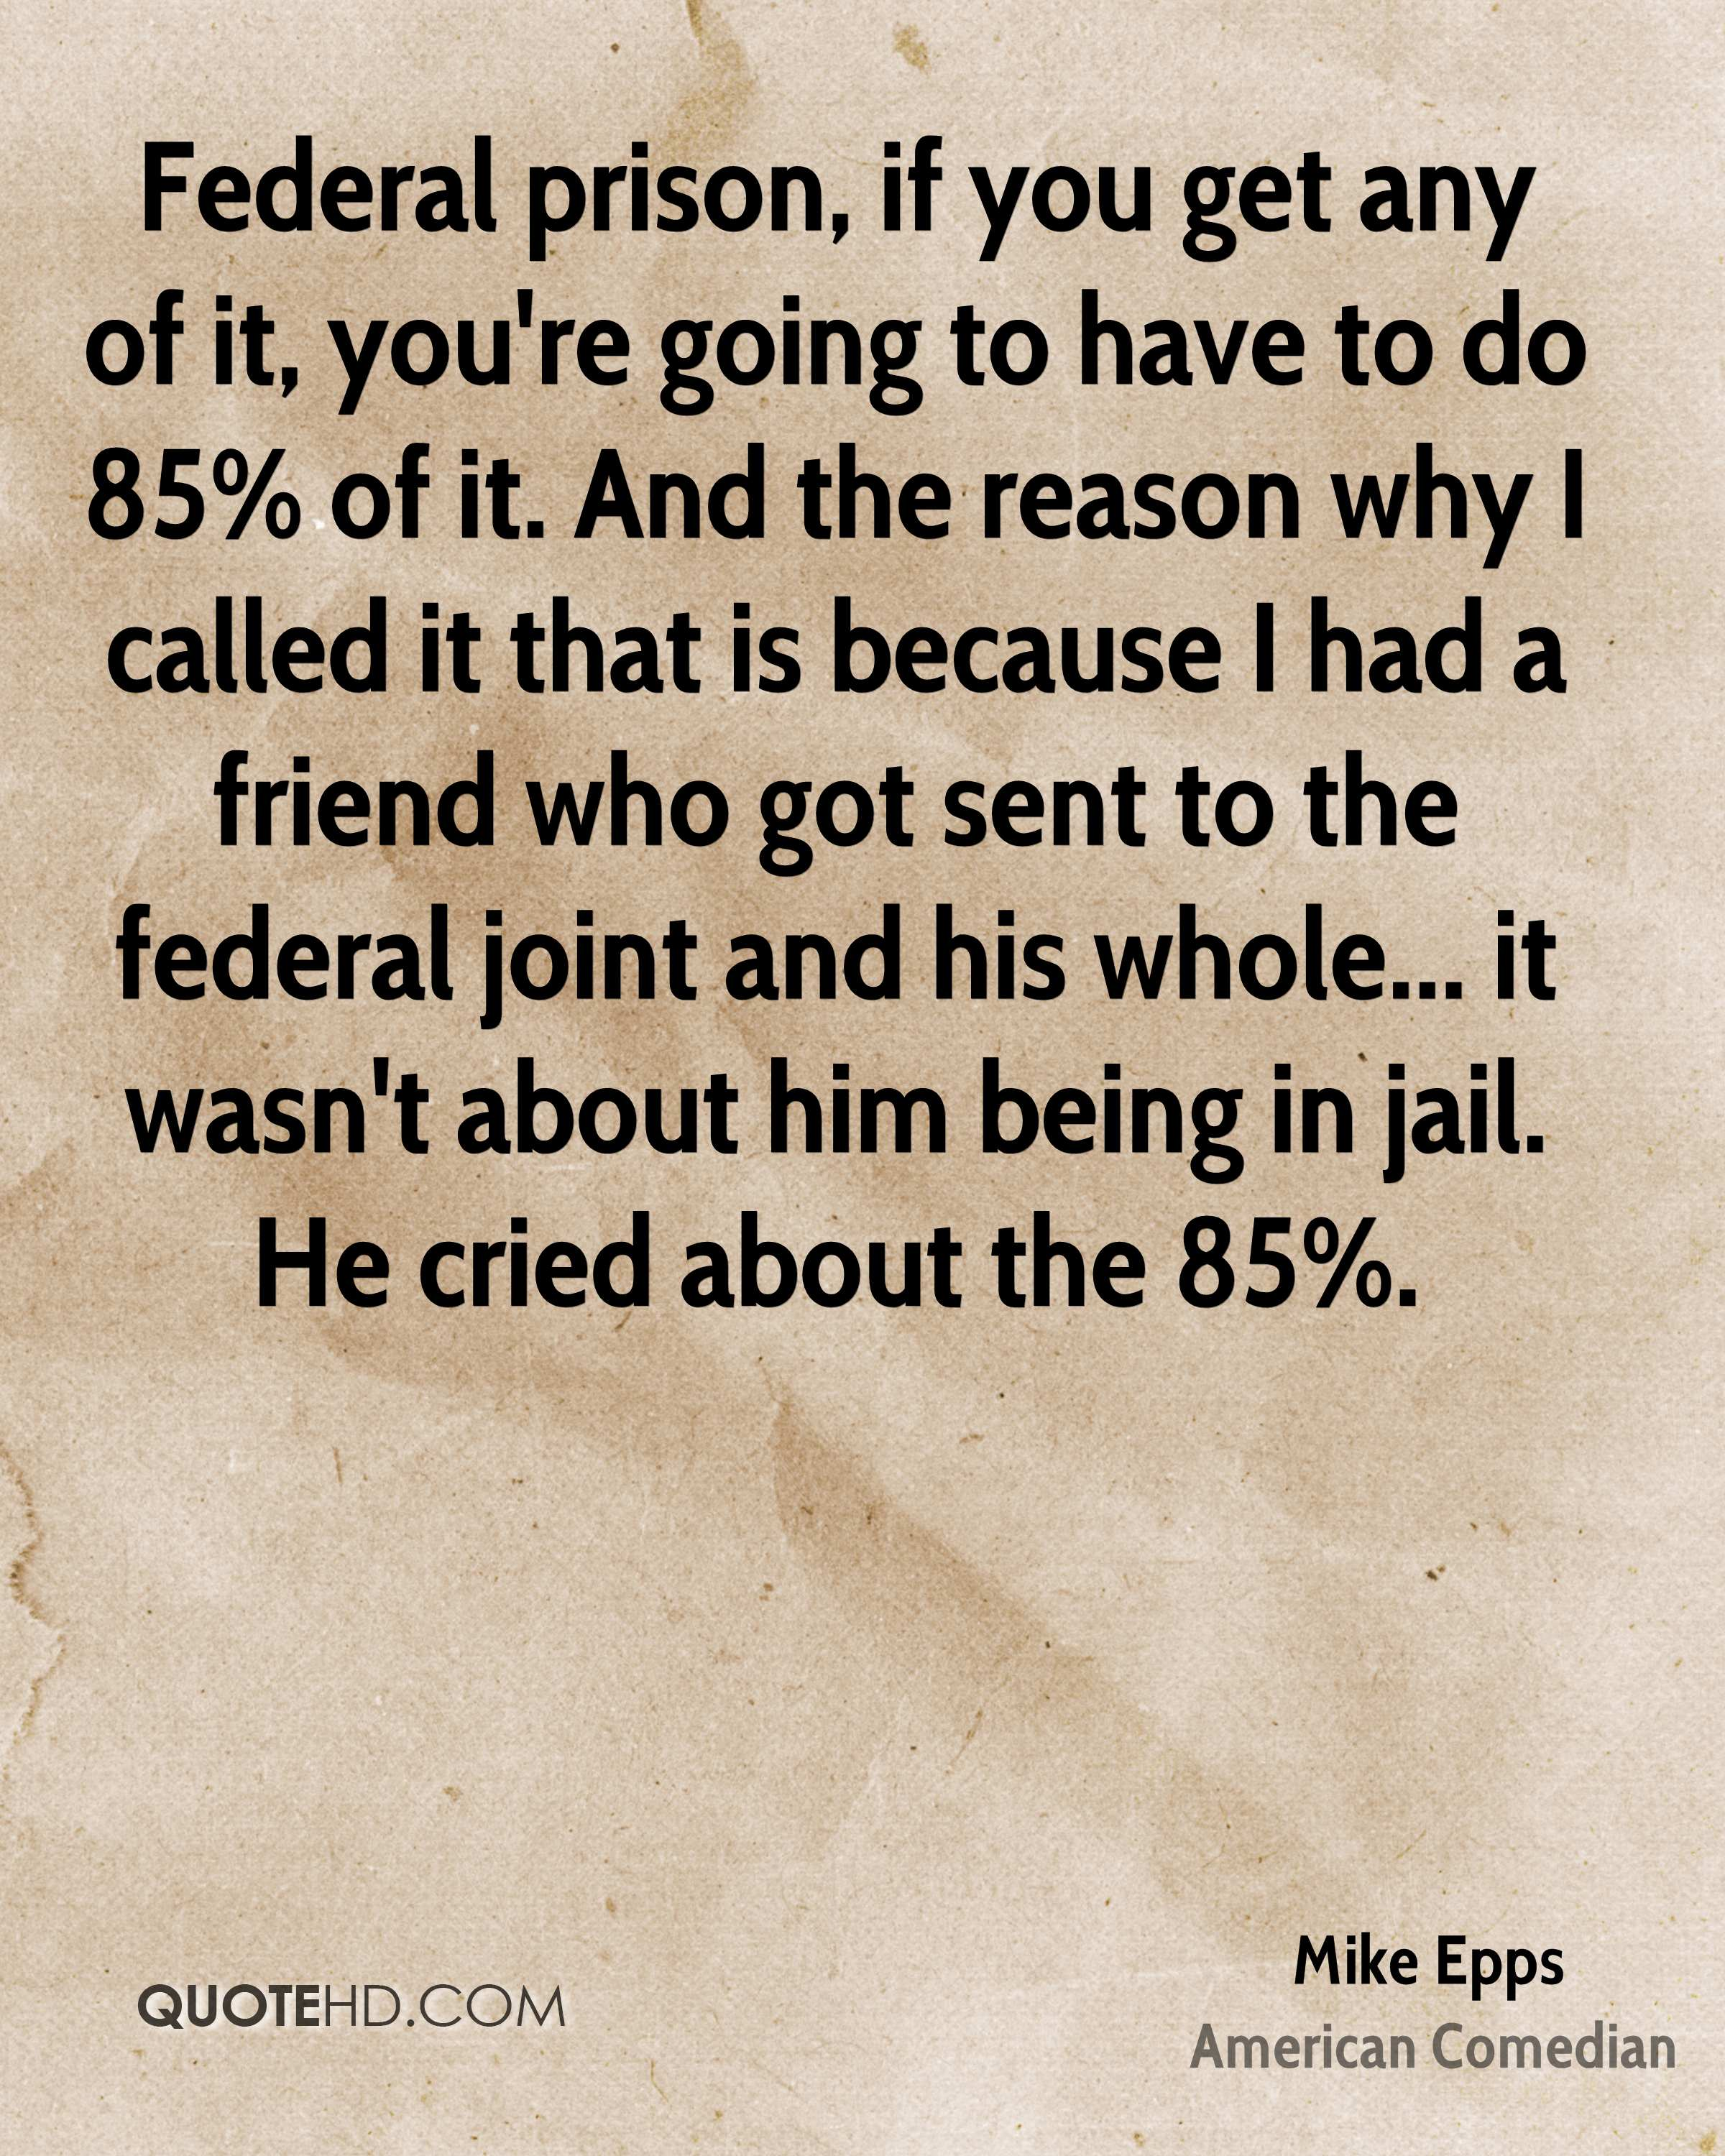 Federal prison, if you get any of it, you're going to have to do 85% of it. And the reason why I called it that is because I had a friend who got sent to the federal joint and his whole... it wasn't about him being in jail. He cried about the 85%.